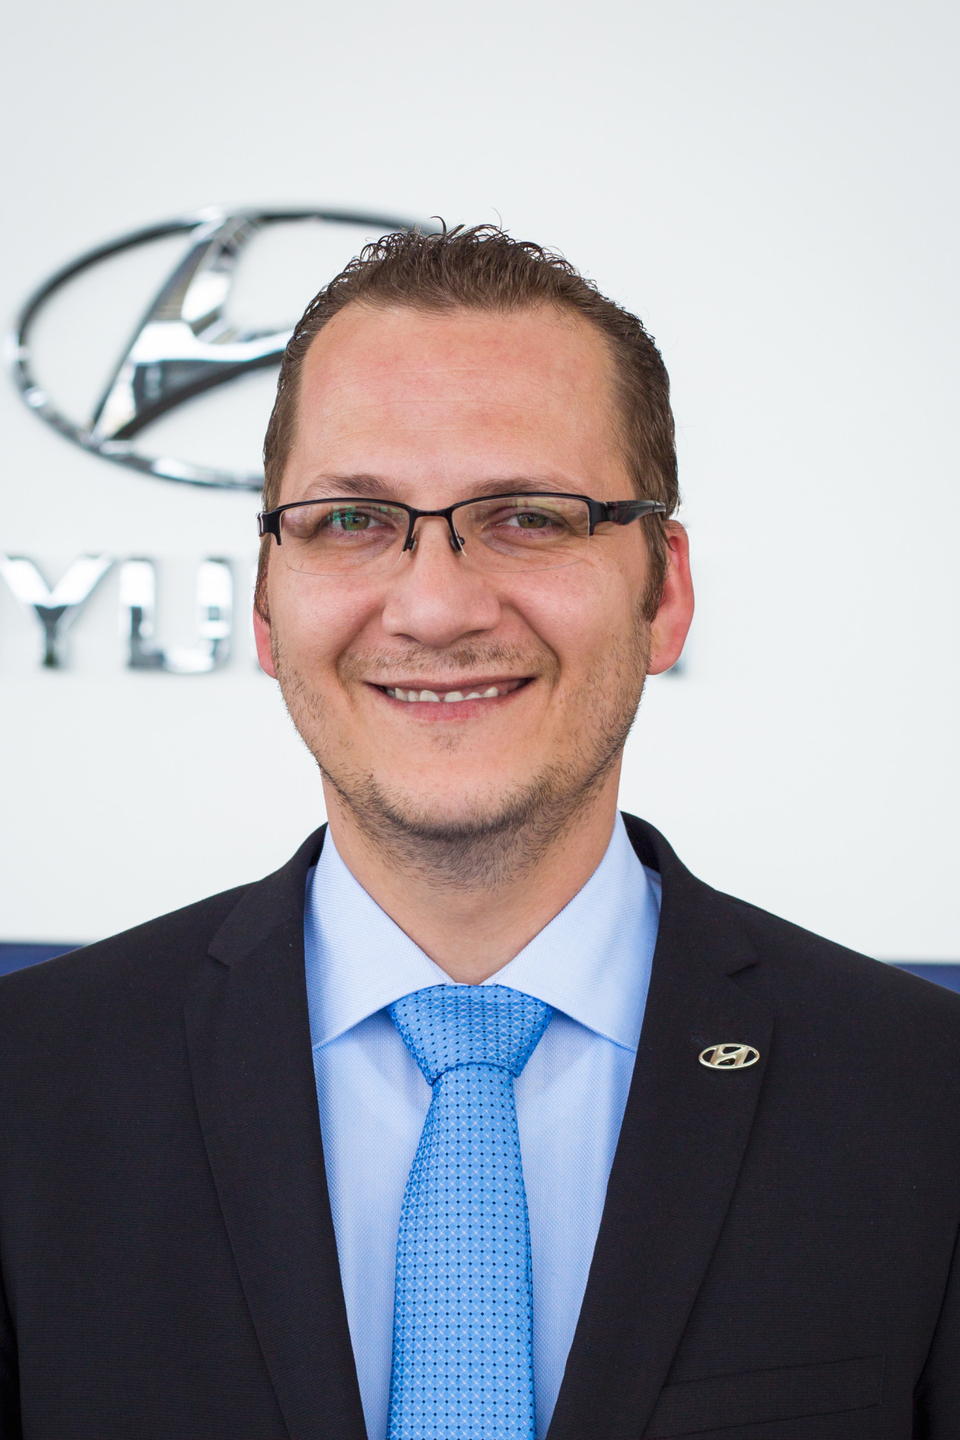 Marek Kopča, Marketing & PR Manager Hyundai